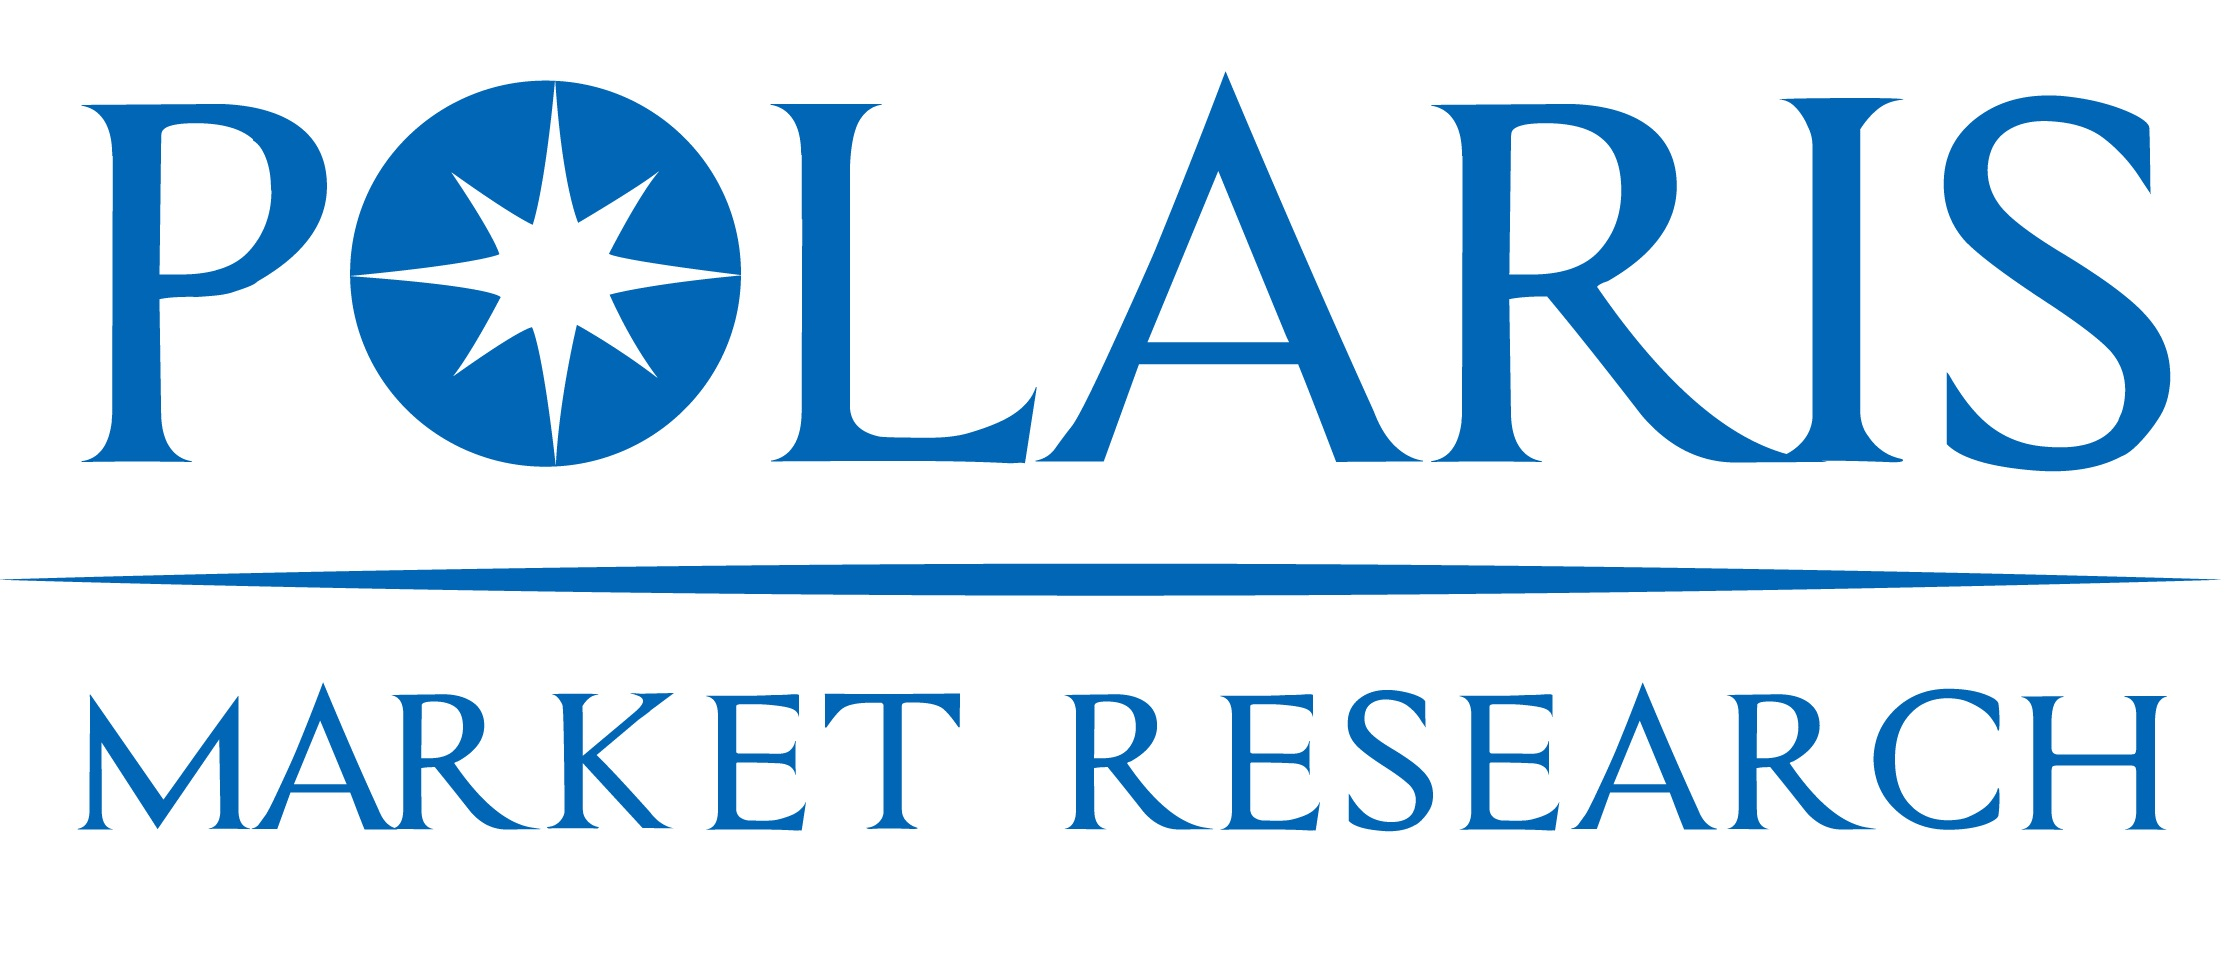 Pharmacy Automation Devices Market Size Is Projected To Reach $9.83 Billion By 2028   CAGR: 9.4%: Polaris Market Research